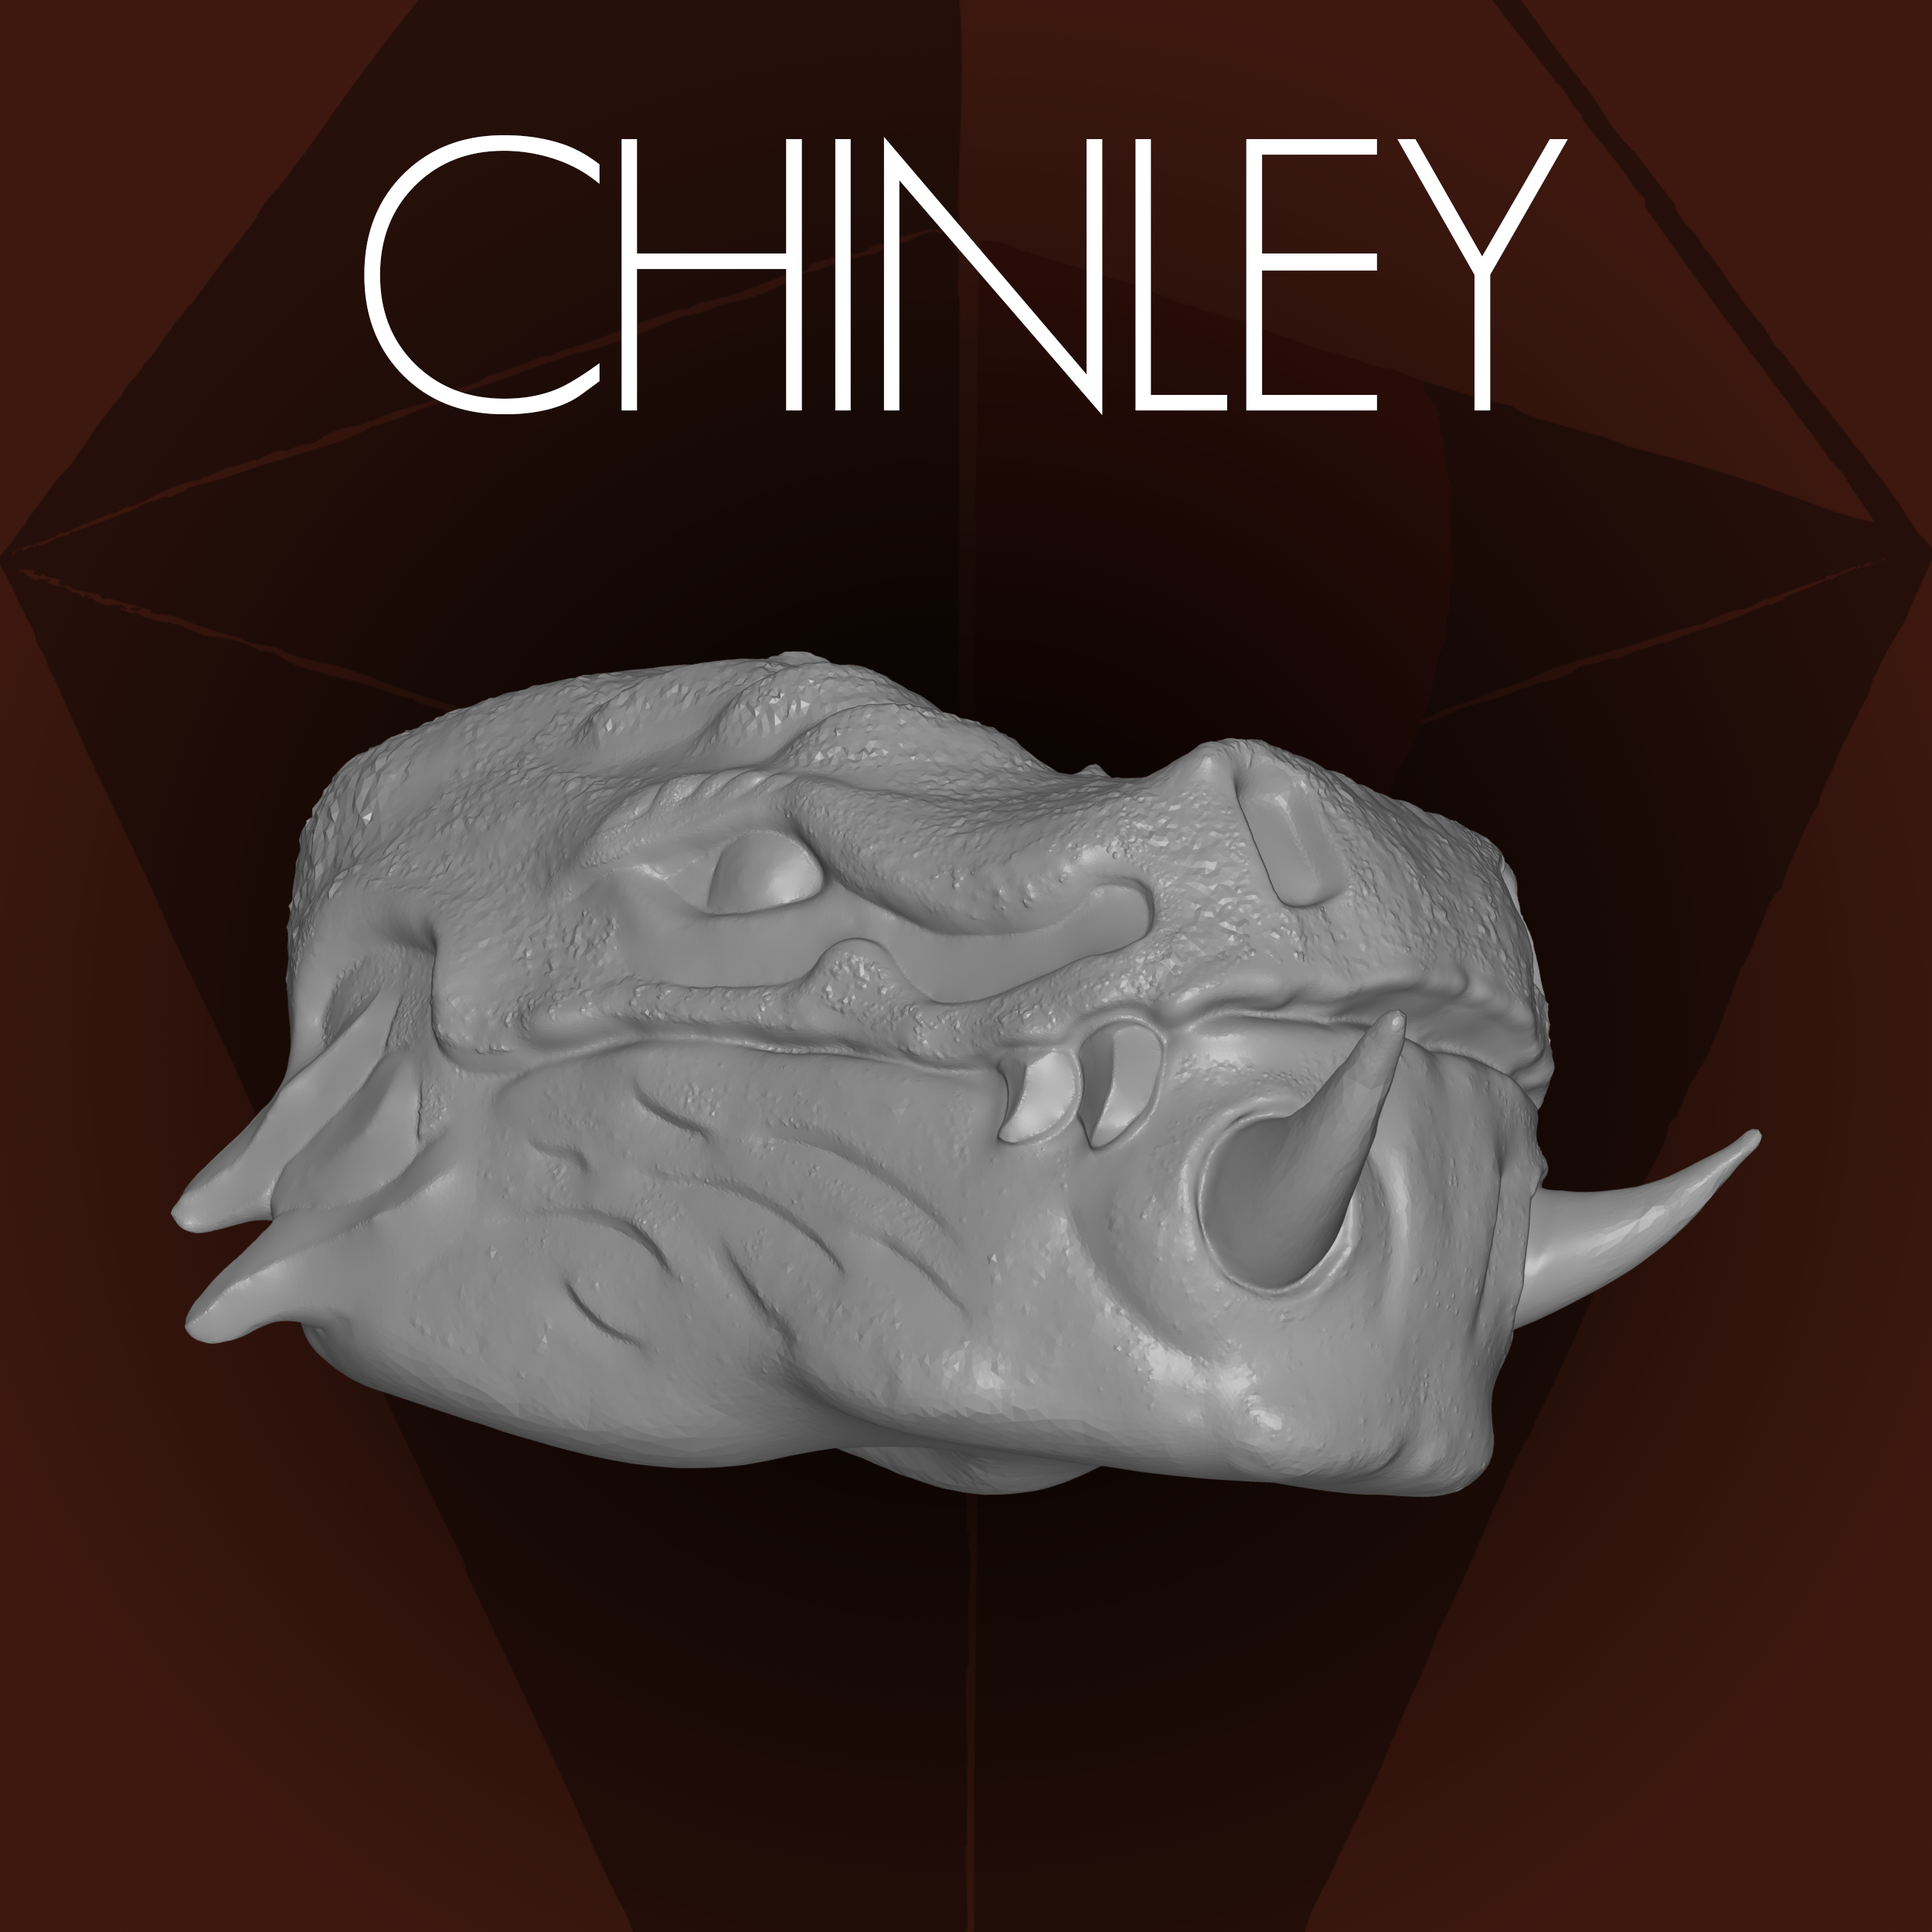 Chinley_Image_2.png